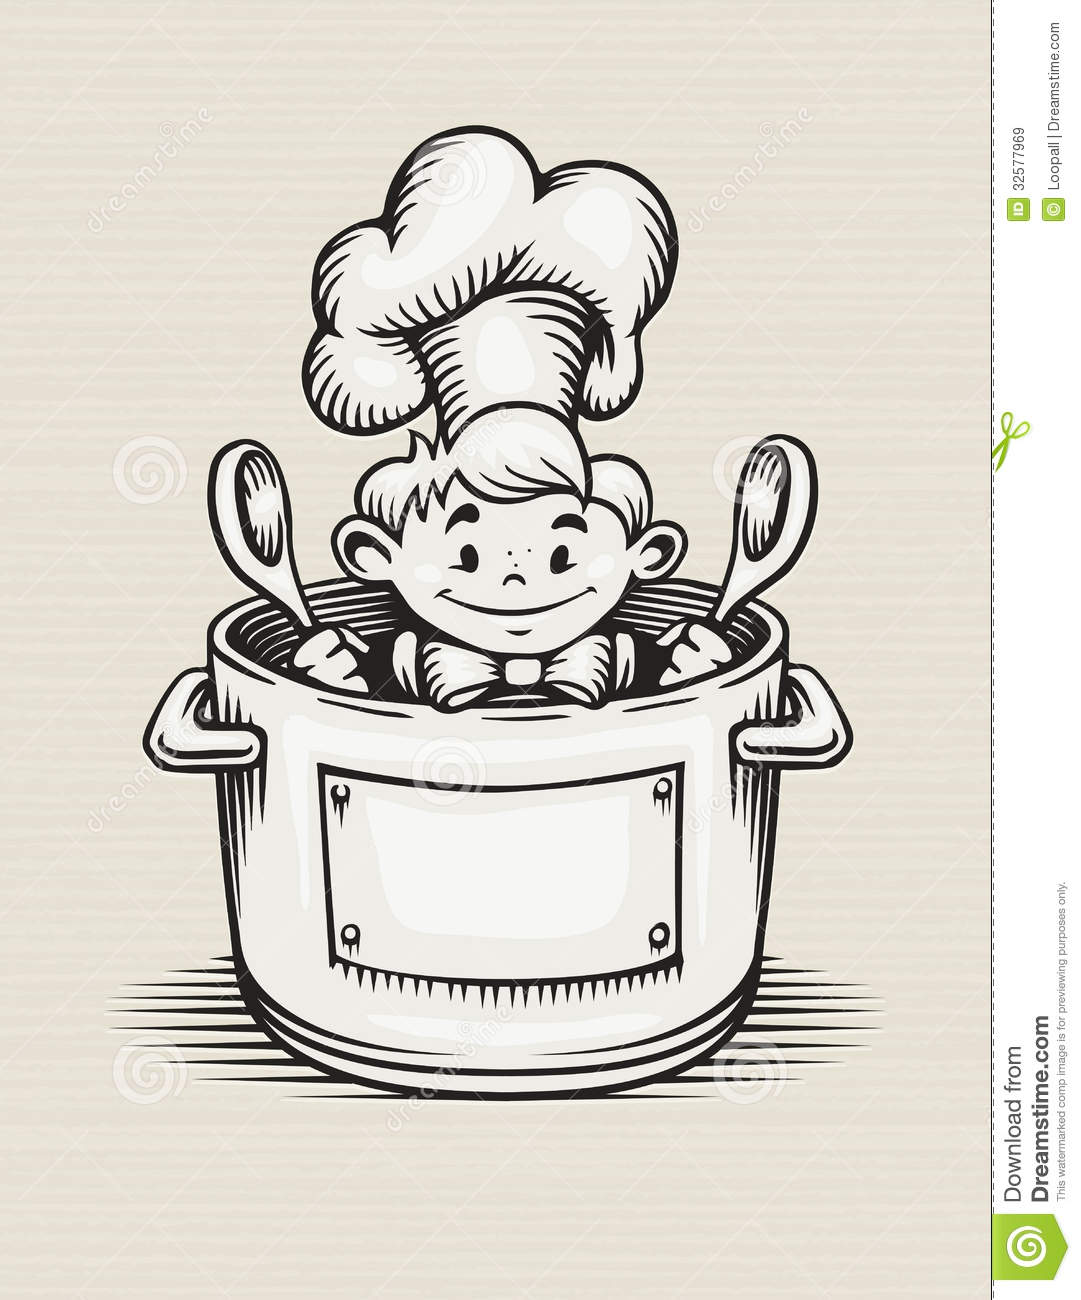 Cliparts Küche Gratis Smiling Boy Cooking In The Kitchen Royalty Free Stock